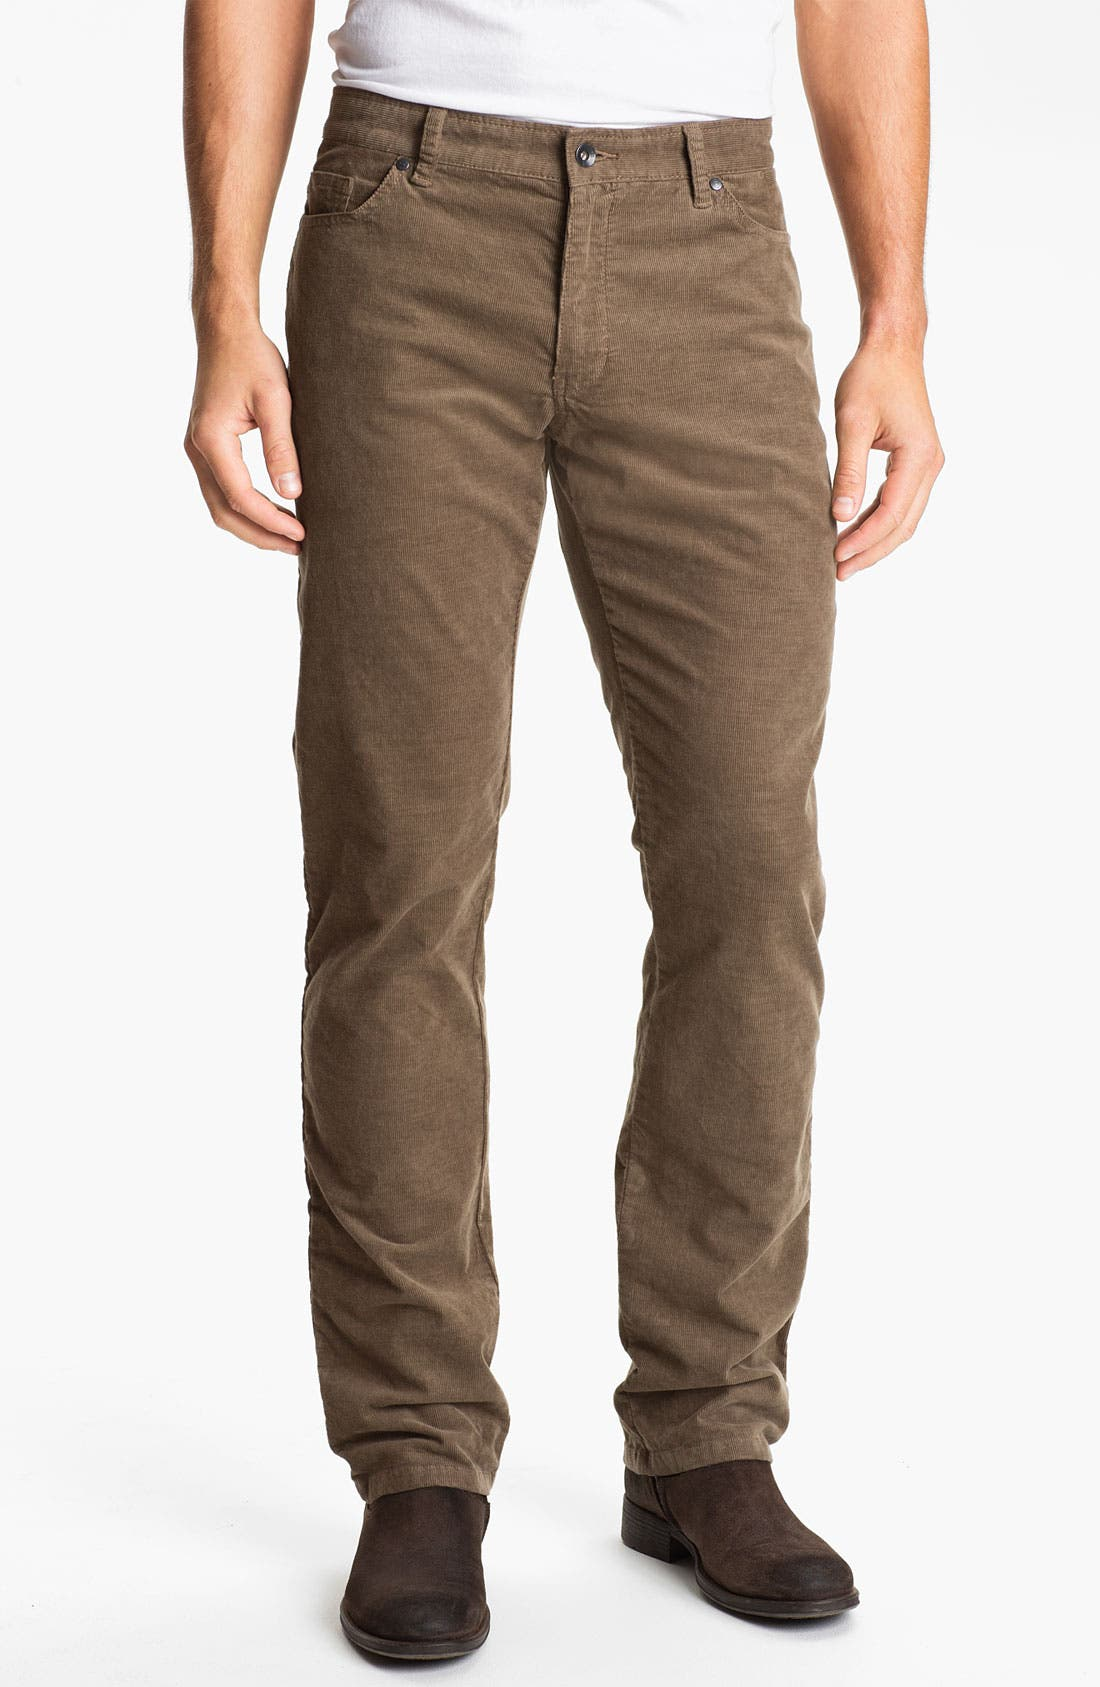 Alternate Image 1 Selected - Victorinox Swiss Army® 'Berne' Corduroy Pants